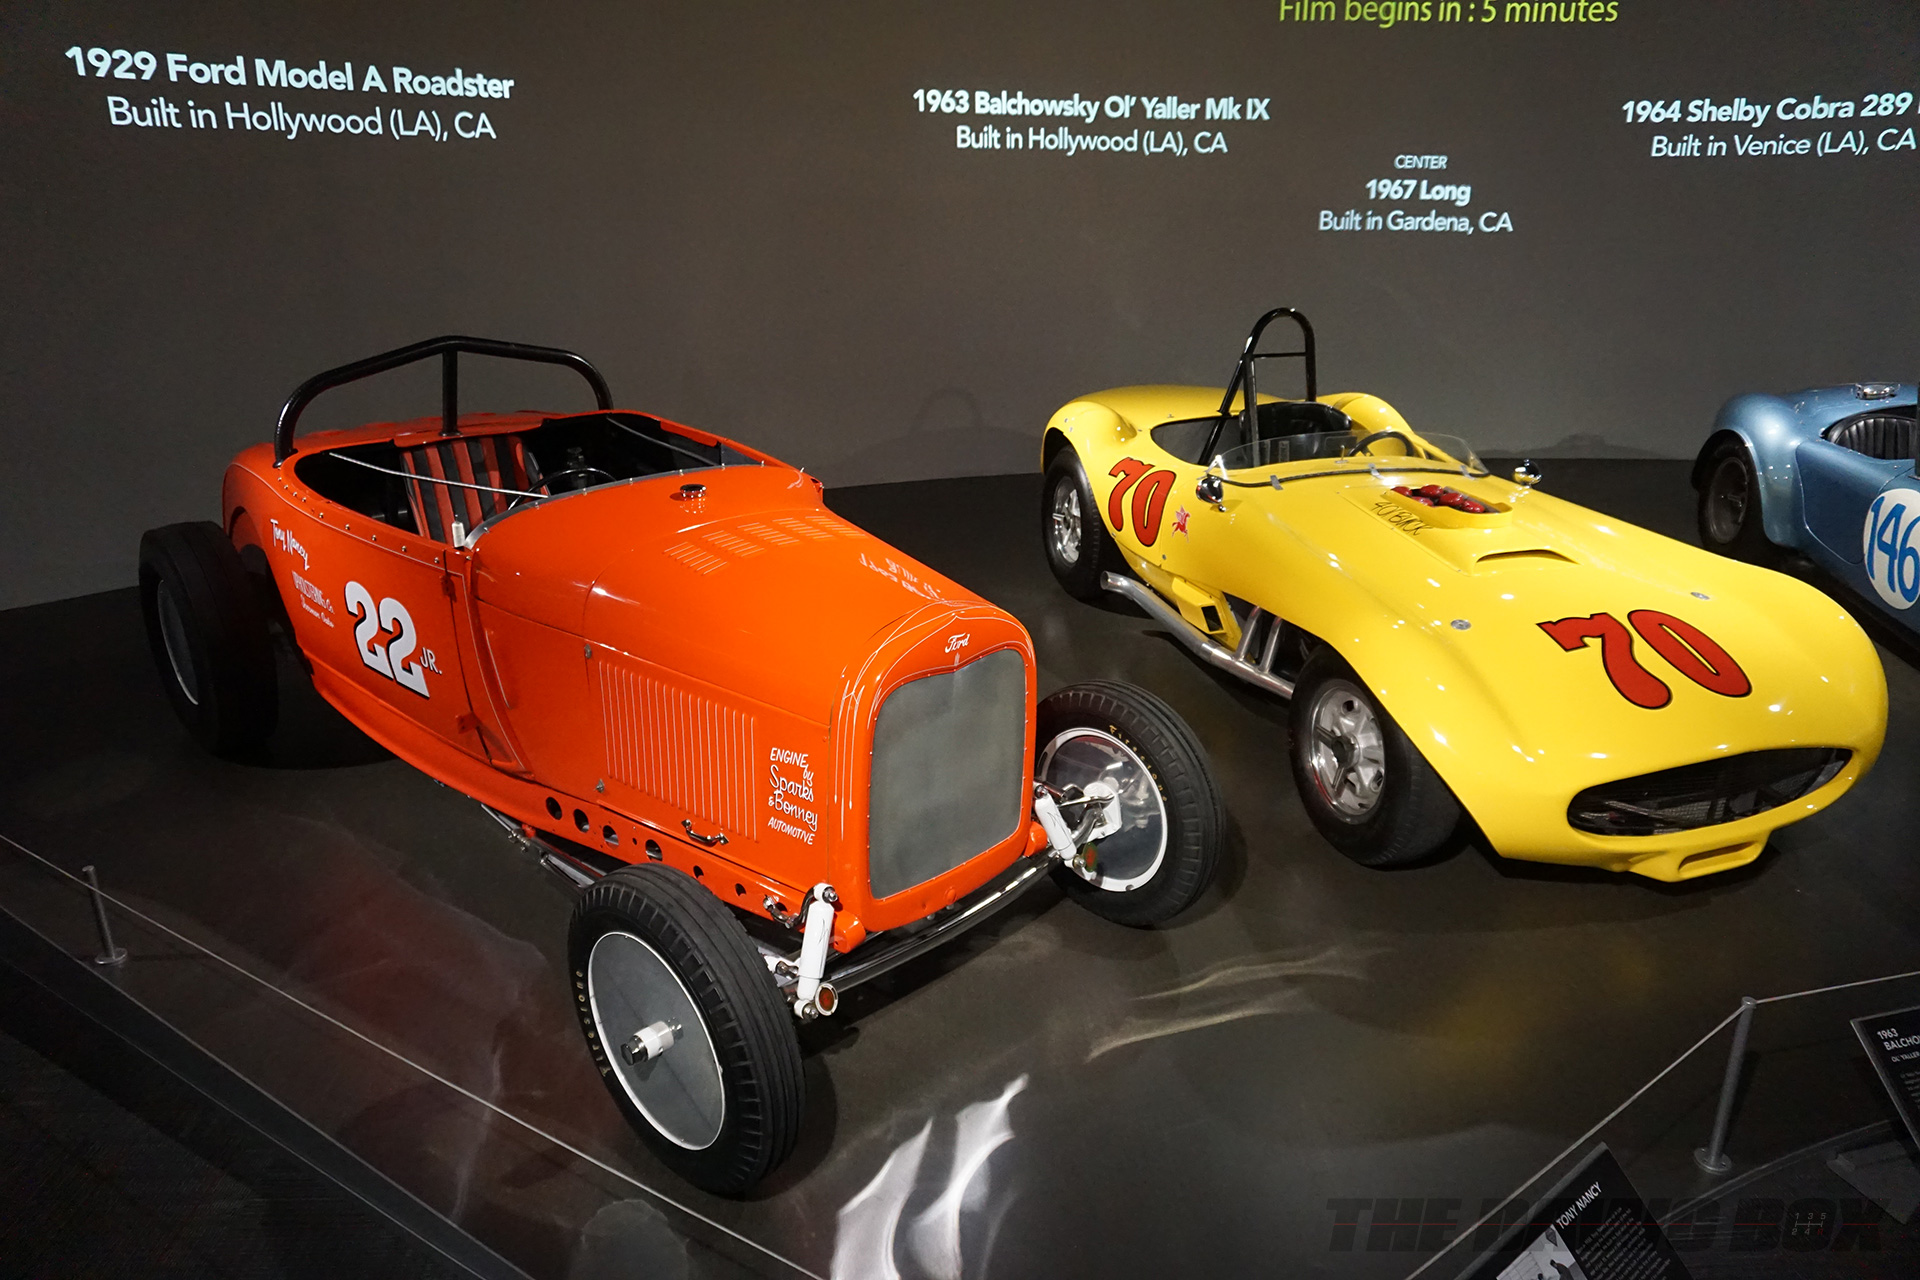 Orange 1929 Ford Model A Roadster and Yellow 1963 Balchowsky Ol' Yaller Mk IX